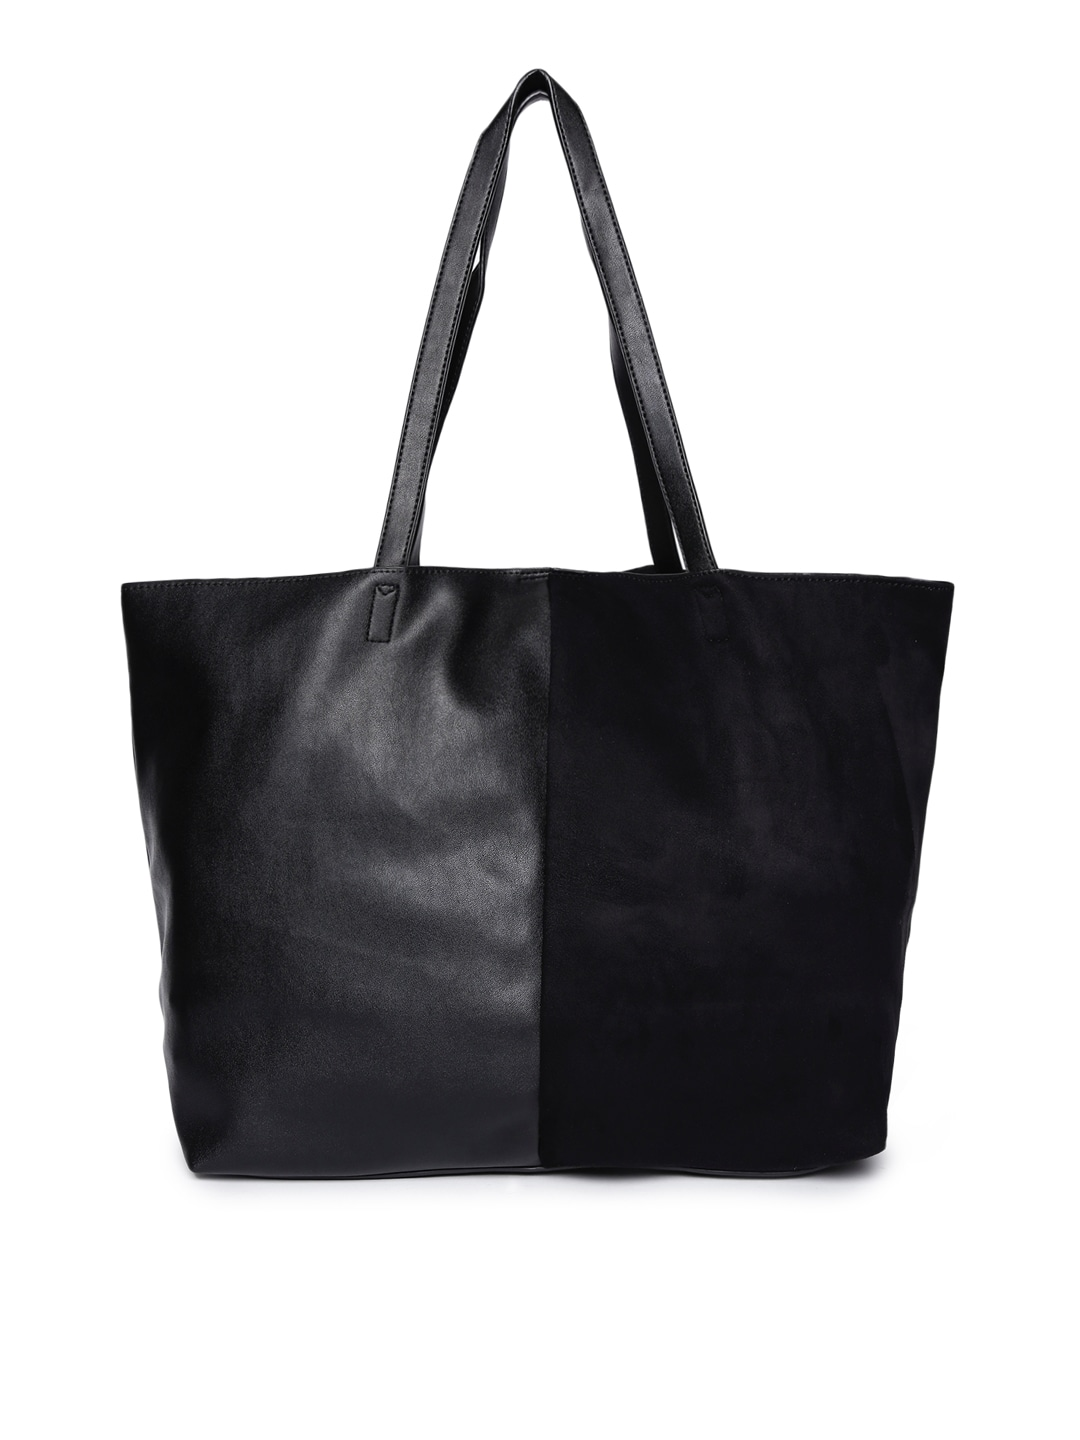 1f9bdecf34a Tote Bag - Buy Latest Tote Bags For Women   Girls Online